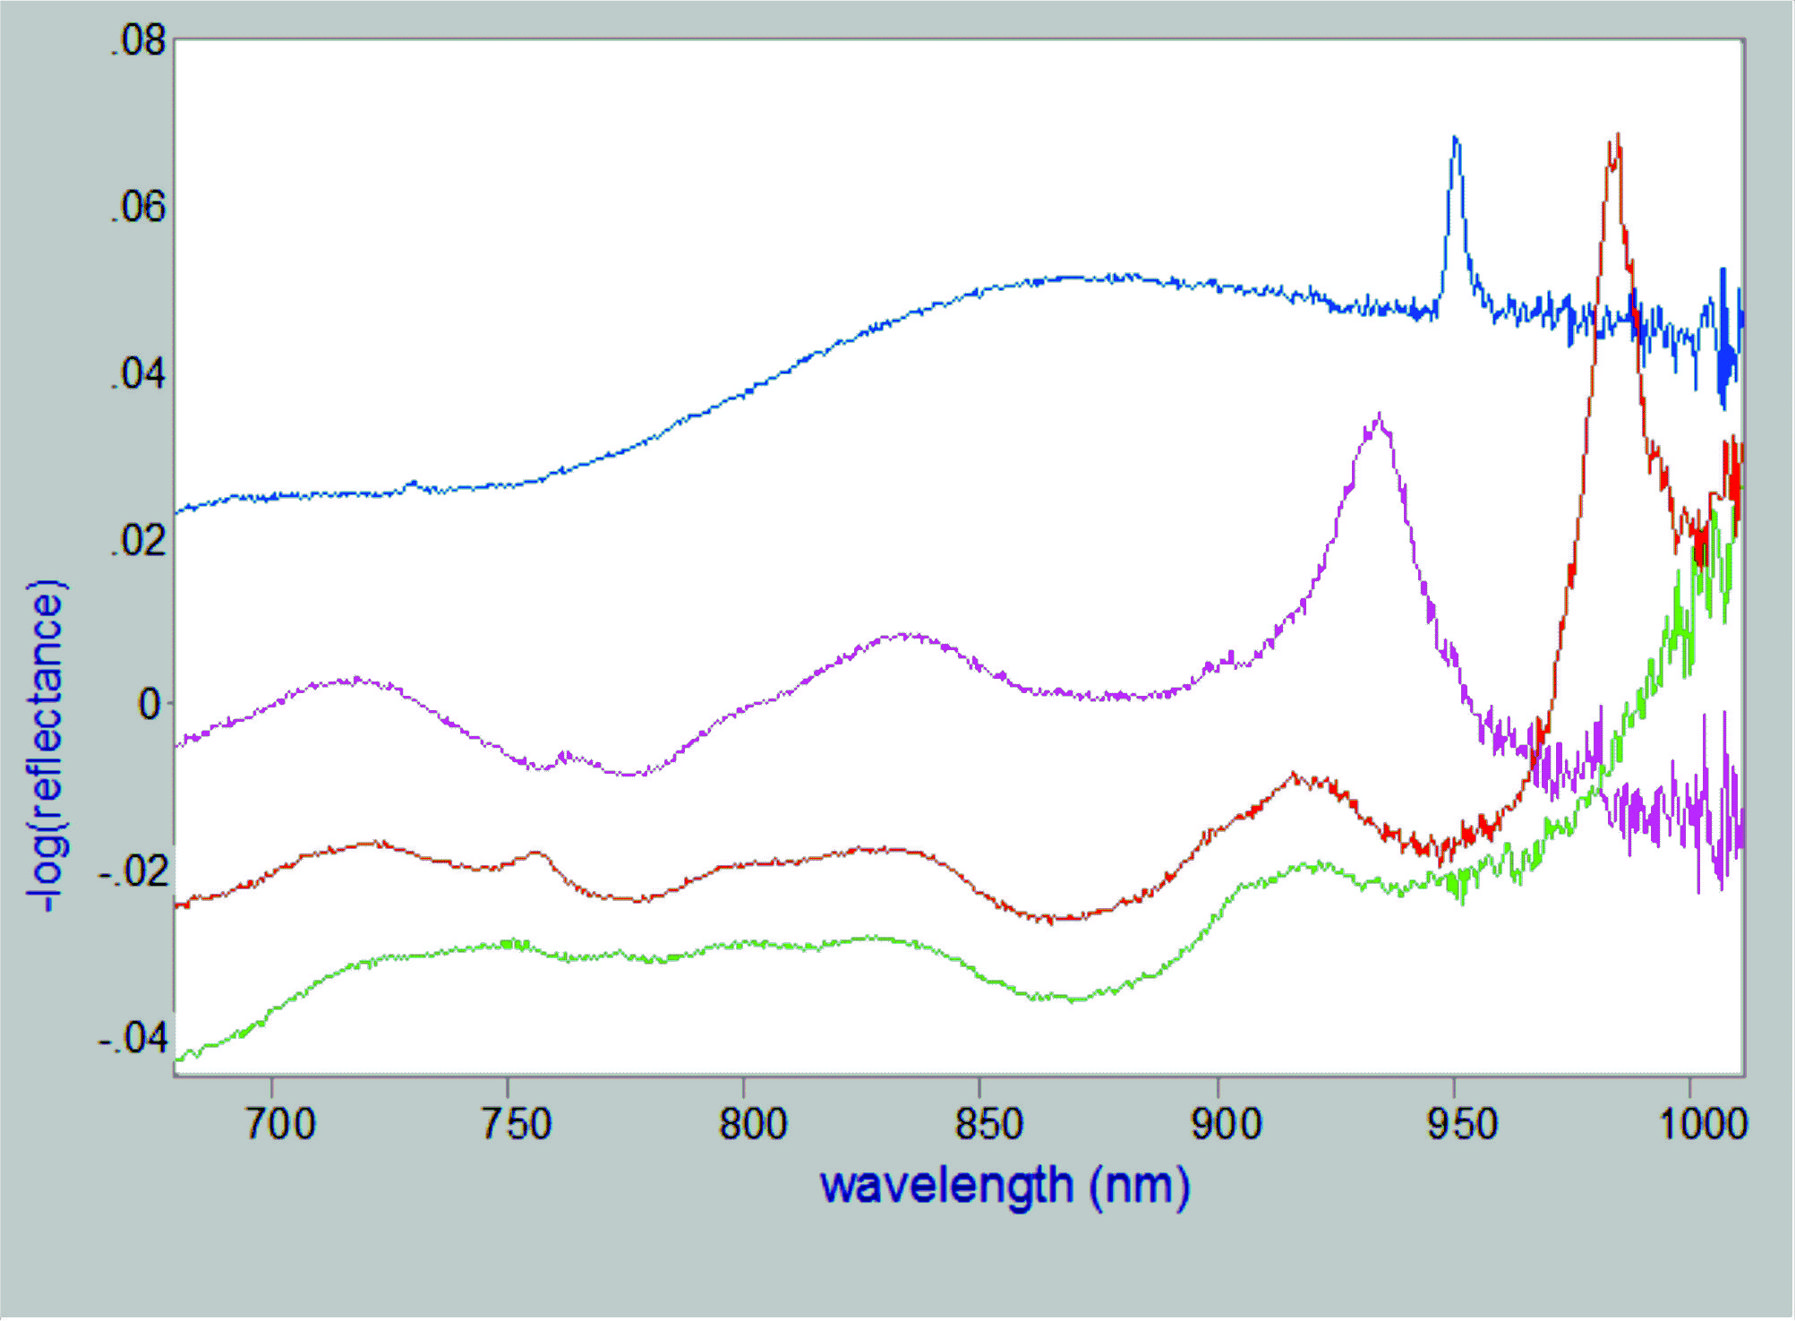 Home Fiber Optic Probe Diagram Nir Reflection Spectra Of 4 White Powders Held In Polyethylene Bags Measured With New Single Led Broadband Light Source And